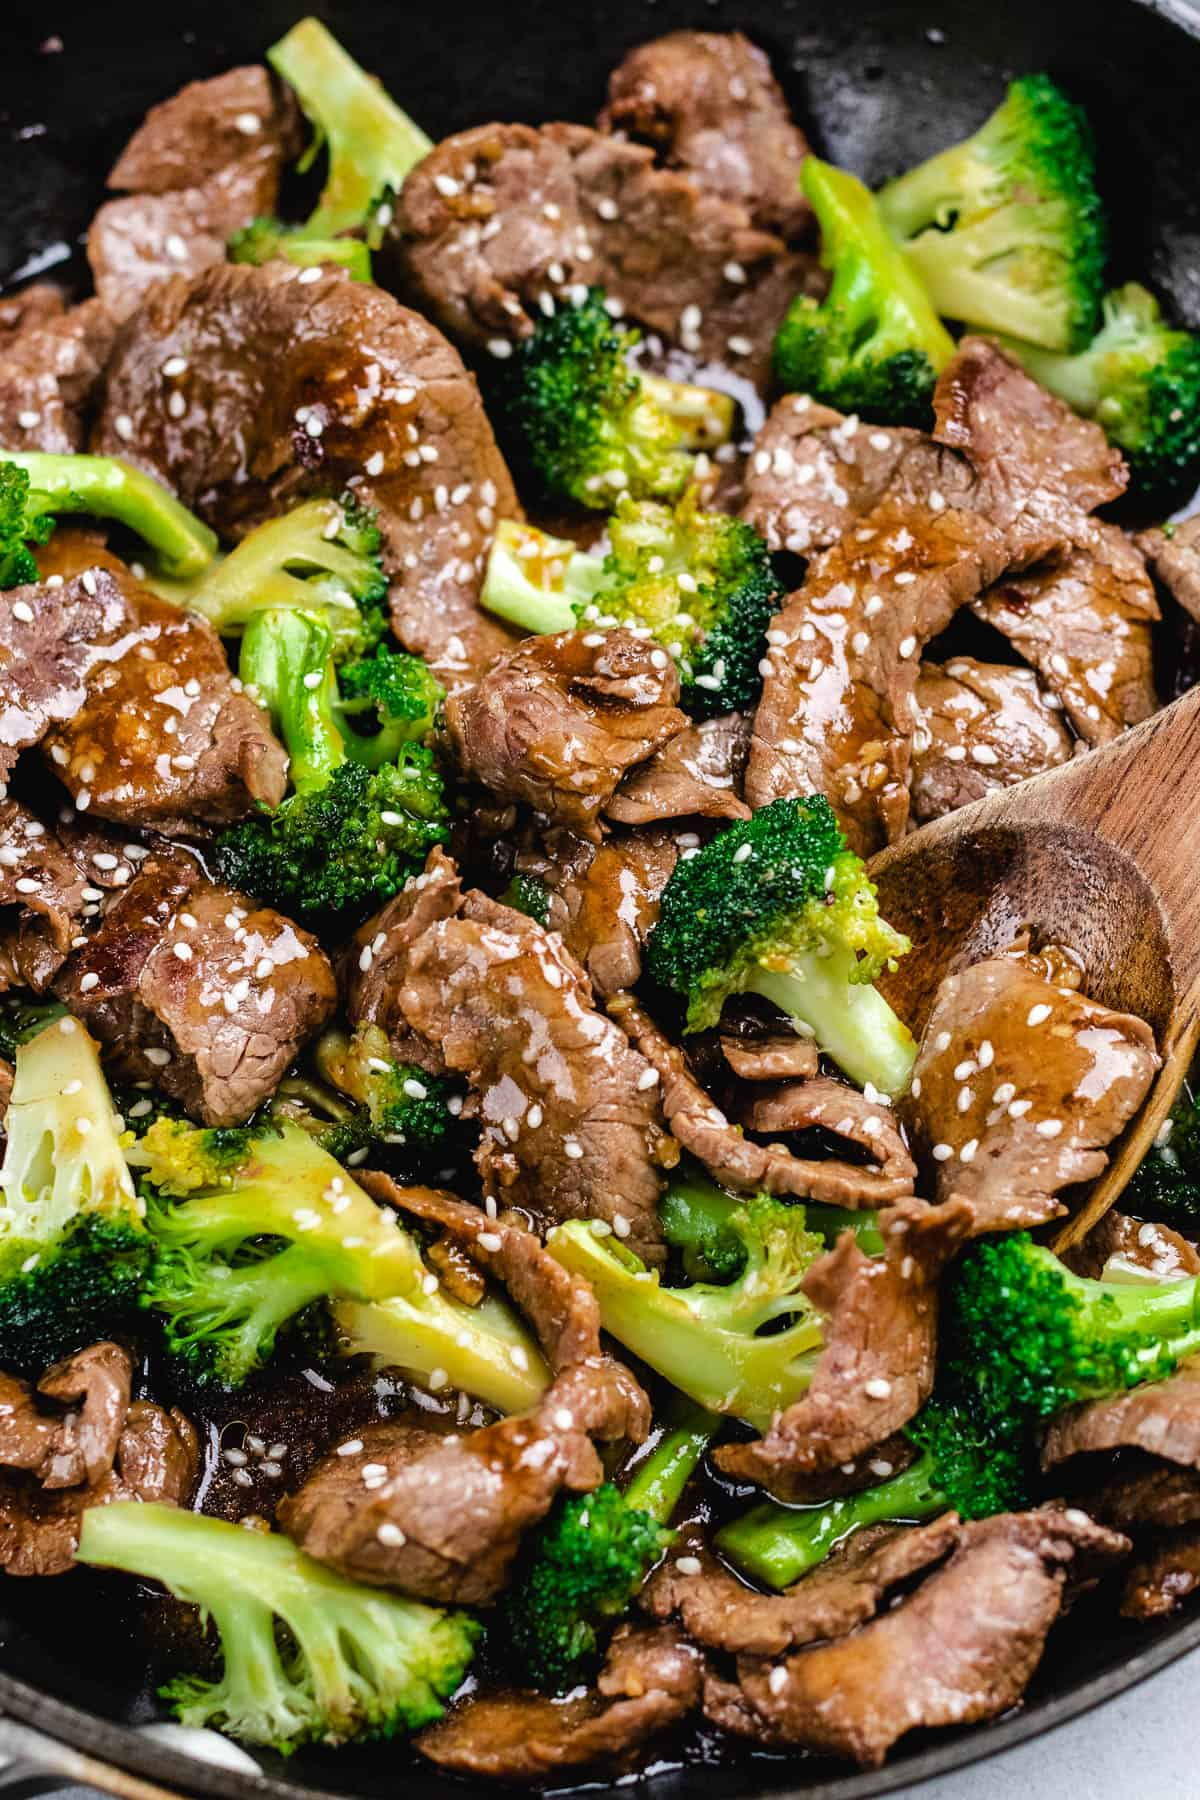 Beef and Broccoli in a skillet, topped with sesame seeds.